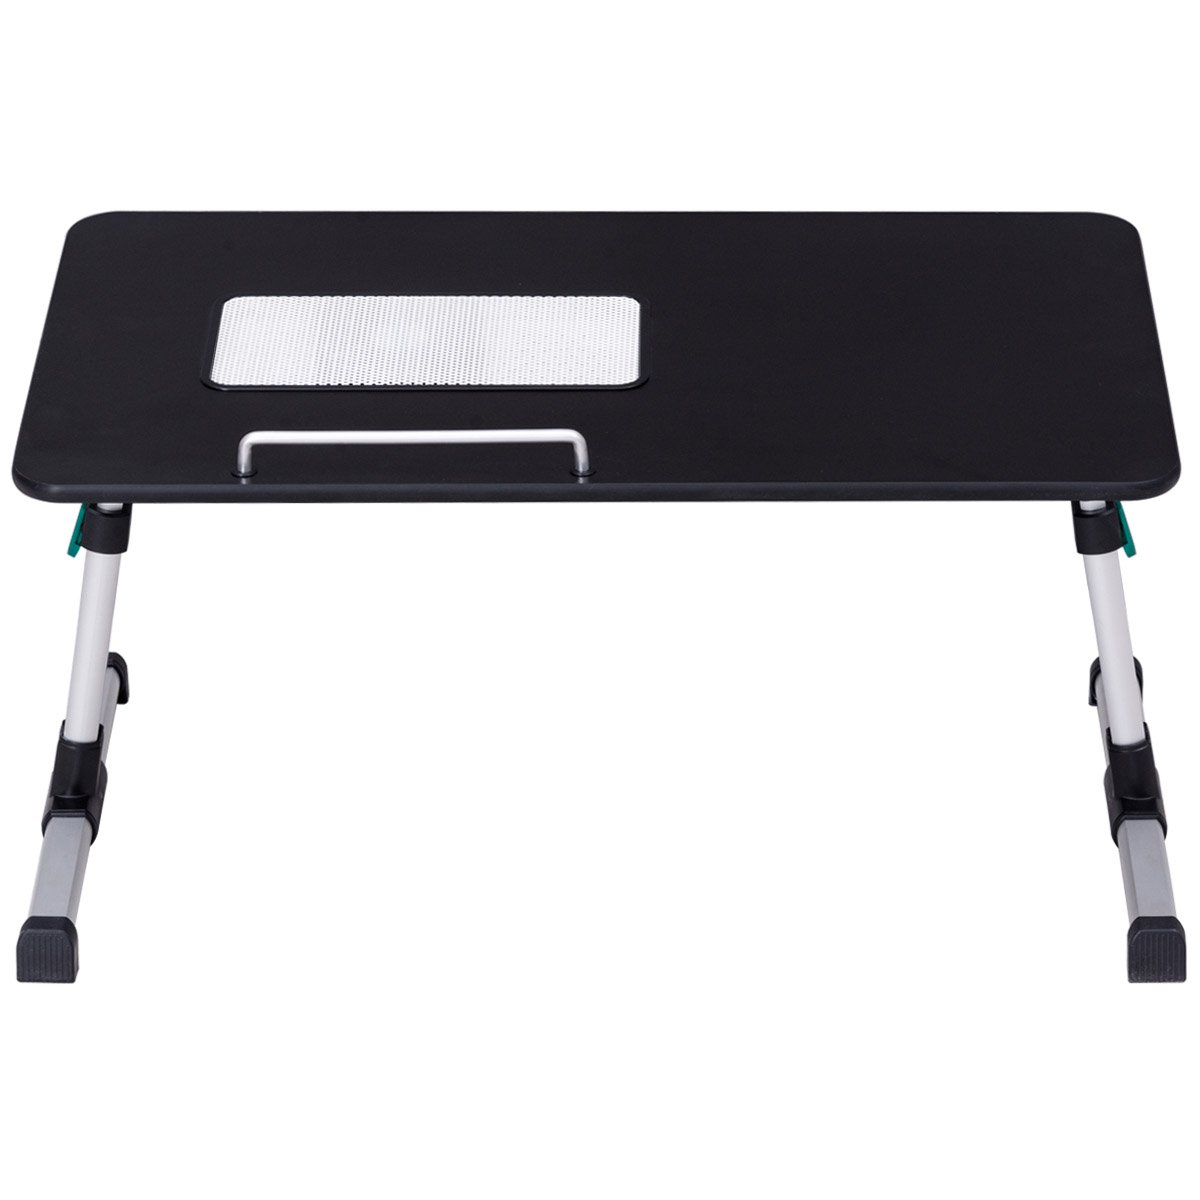 Tangkula Portable Laptop Desk Height Angle Adjustable Foldable Notebook Table with Cooling Fan (Black)